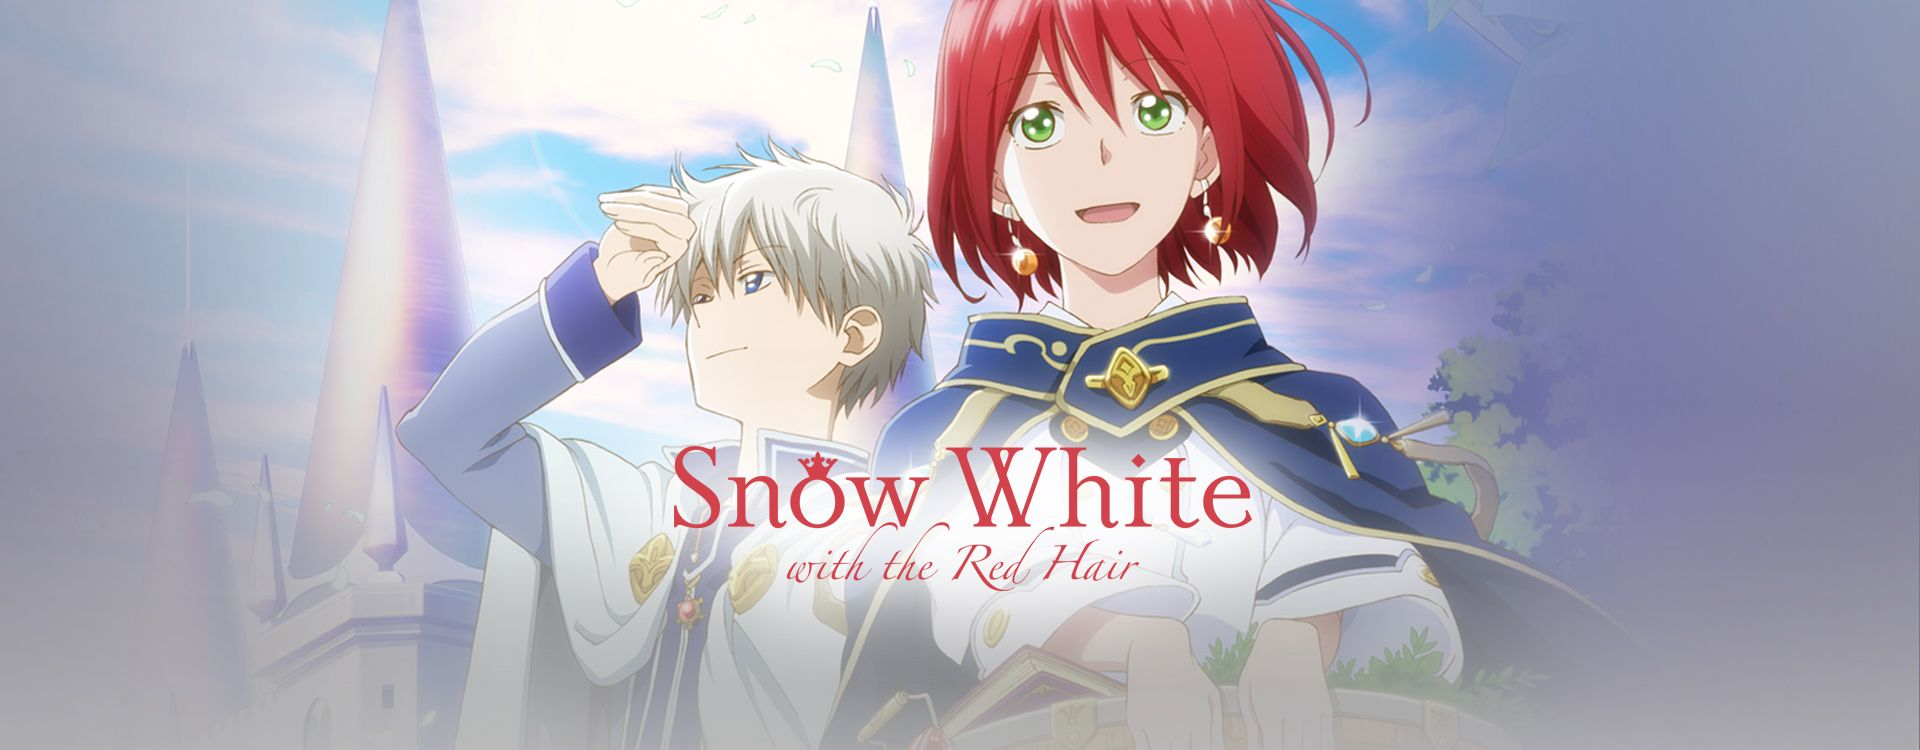 Snow White With The Red Hair Snow White With The Red Hair Red Hair Snow White